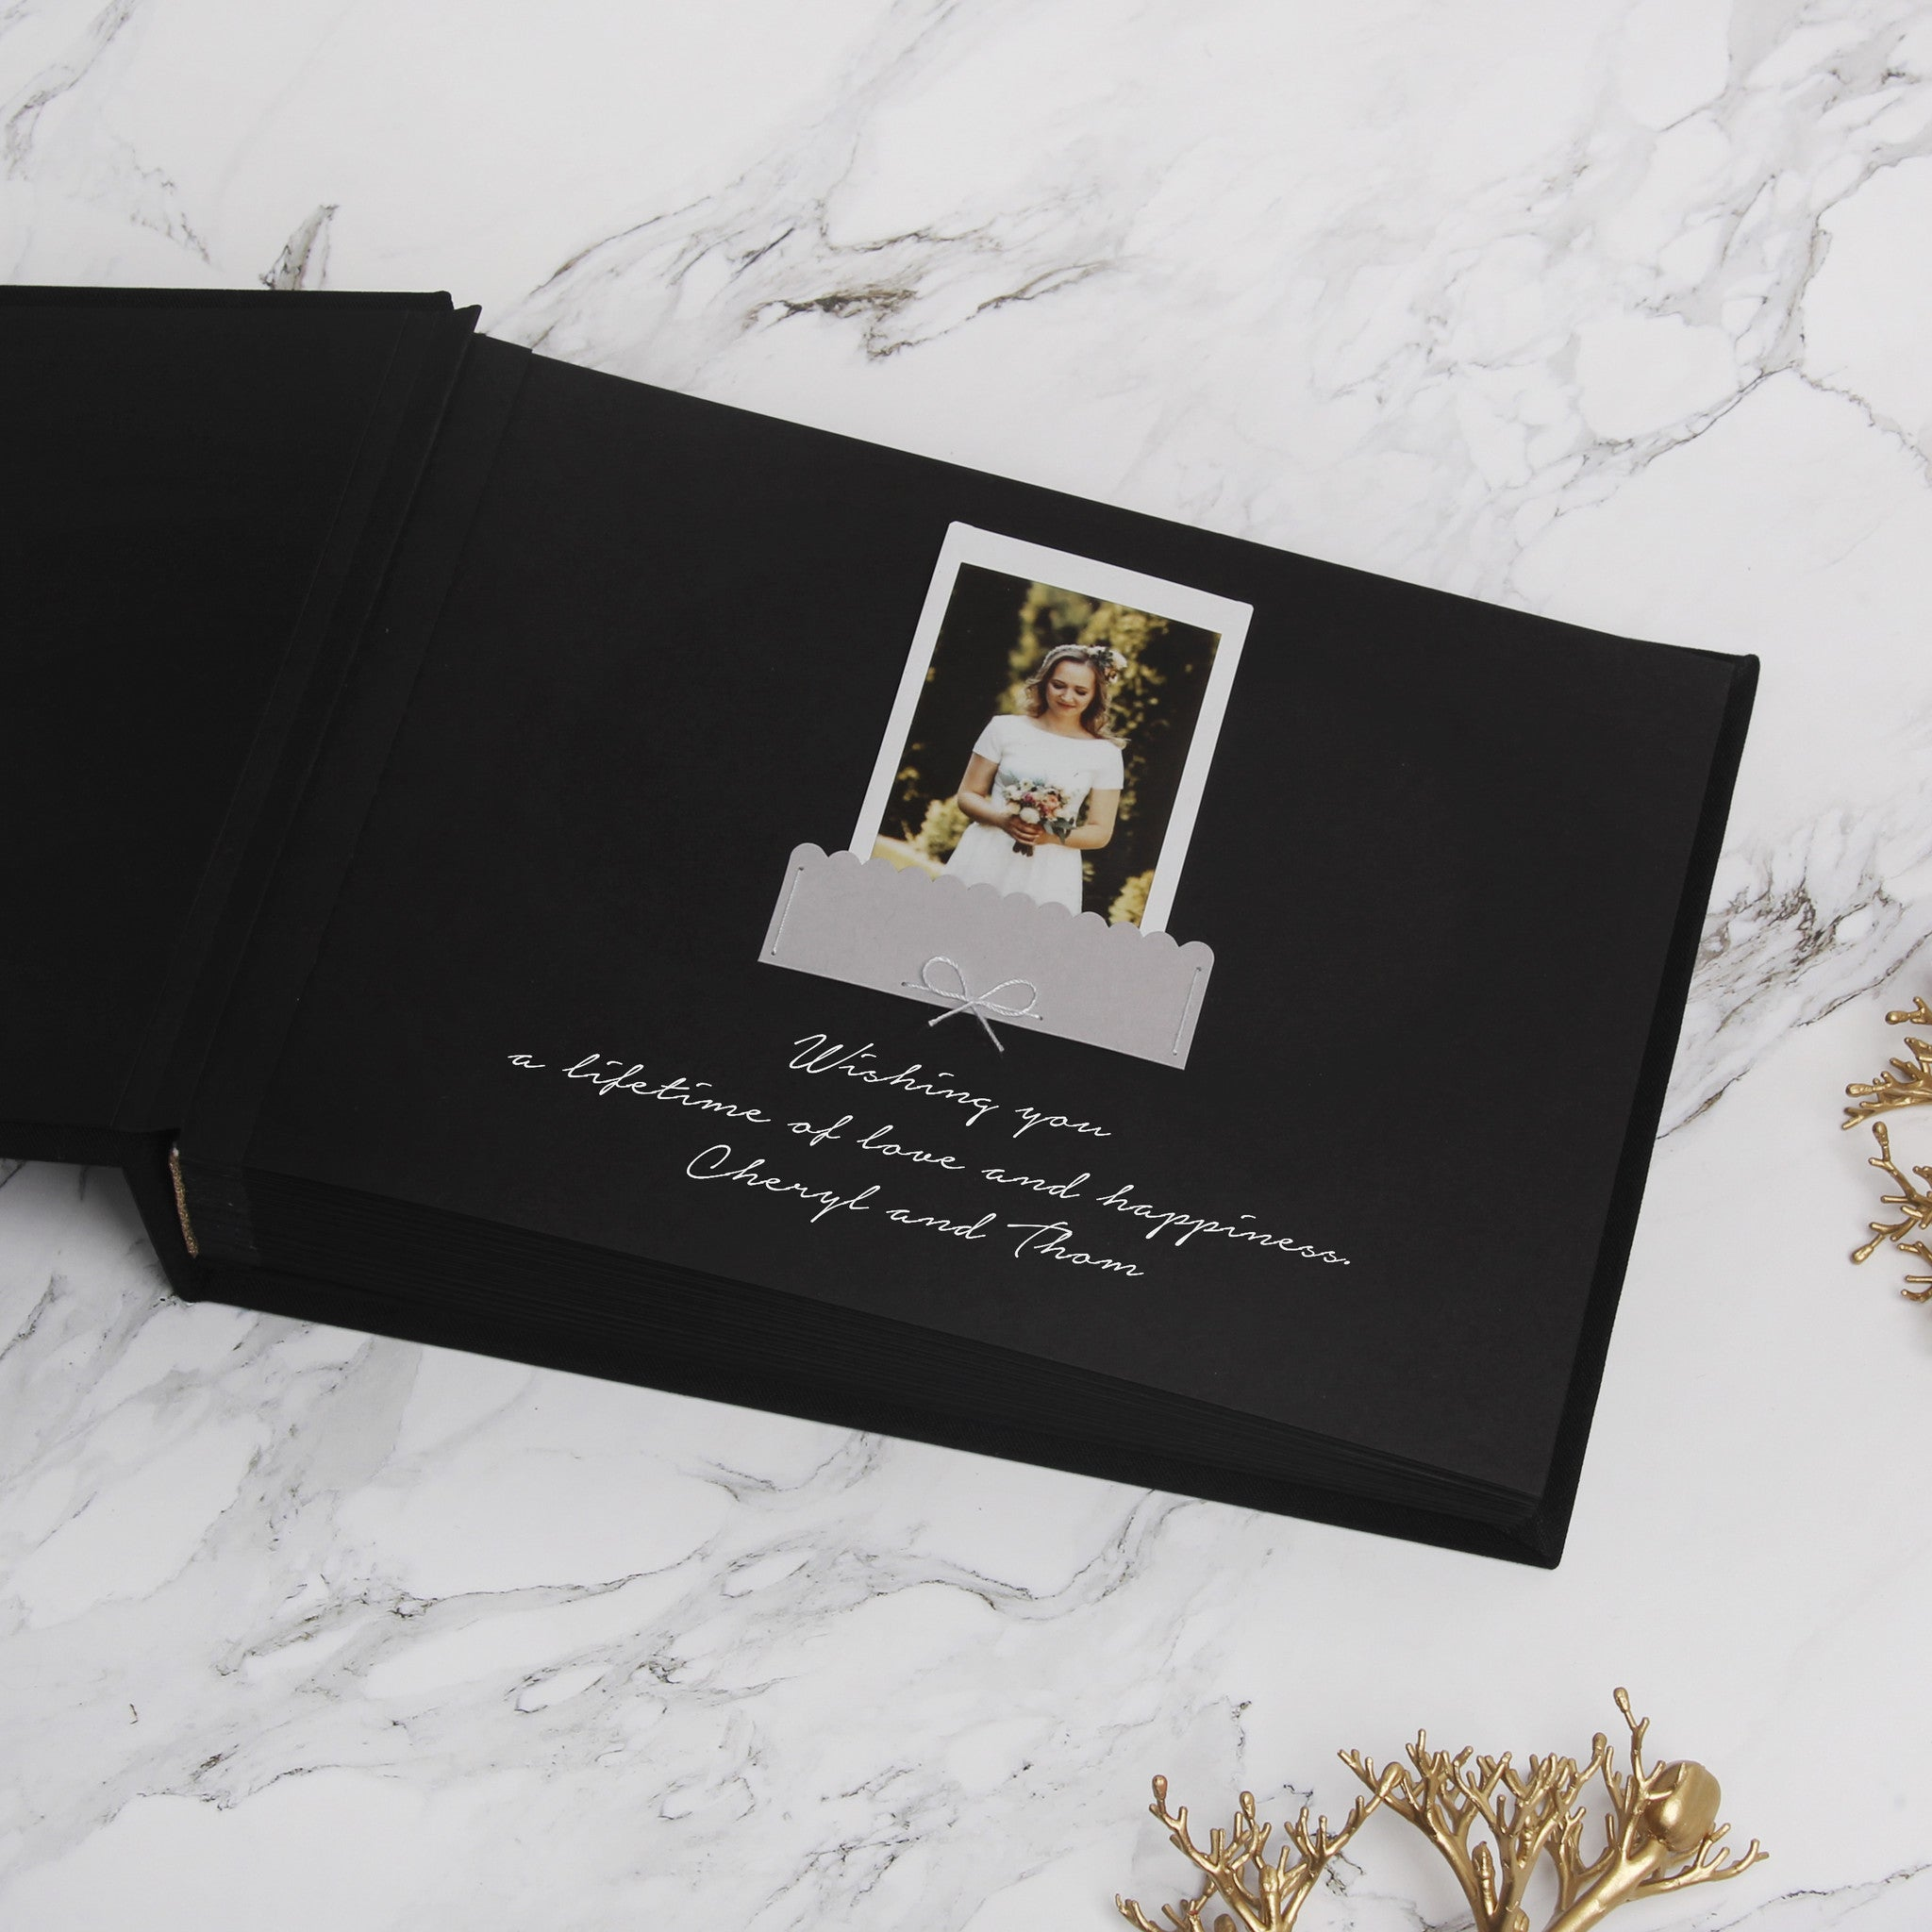 Guest Book Sign in Book Wedding Instant Photo Album Black with Paper Label Black Pages by Liumy - Liumy